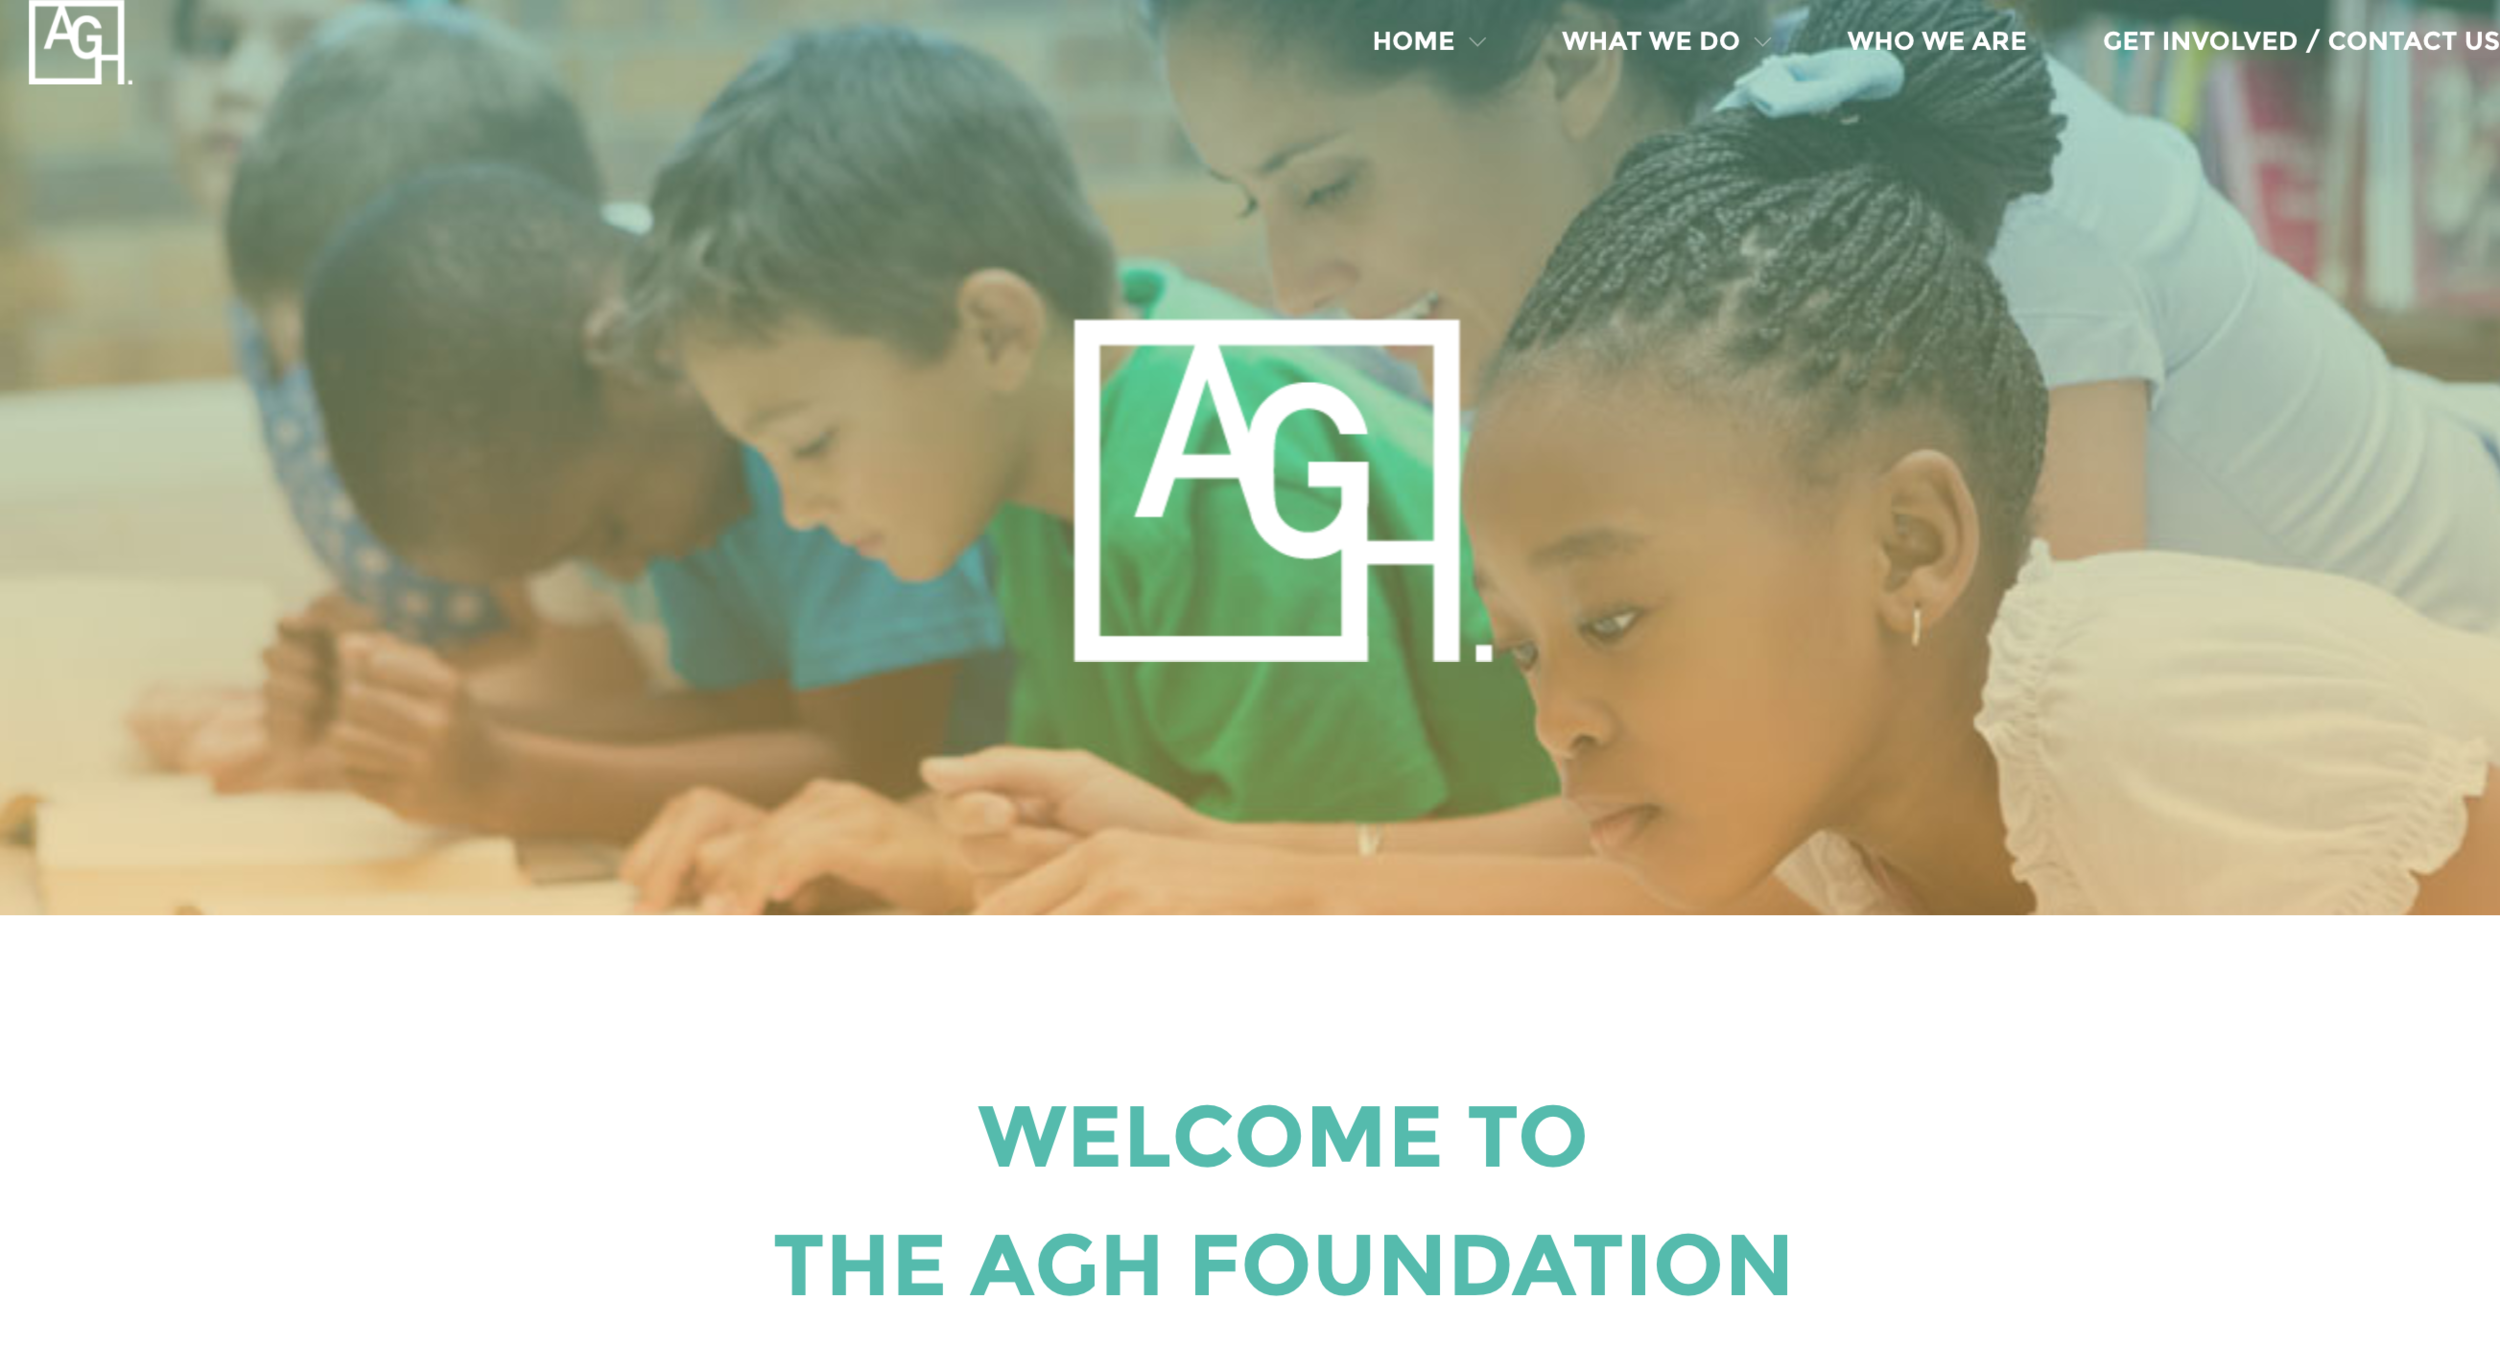 THE AGH FOUNDATION